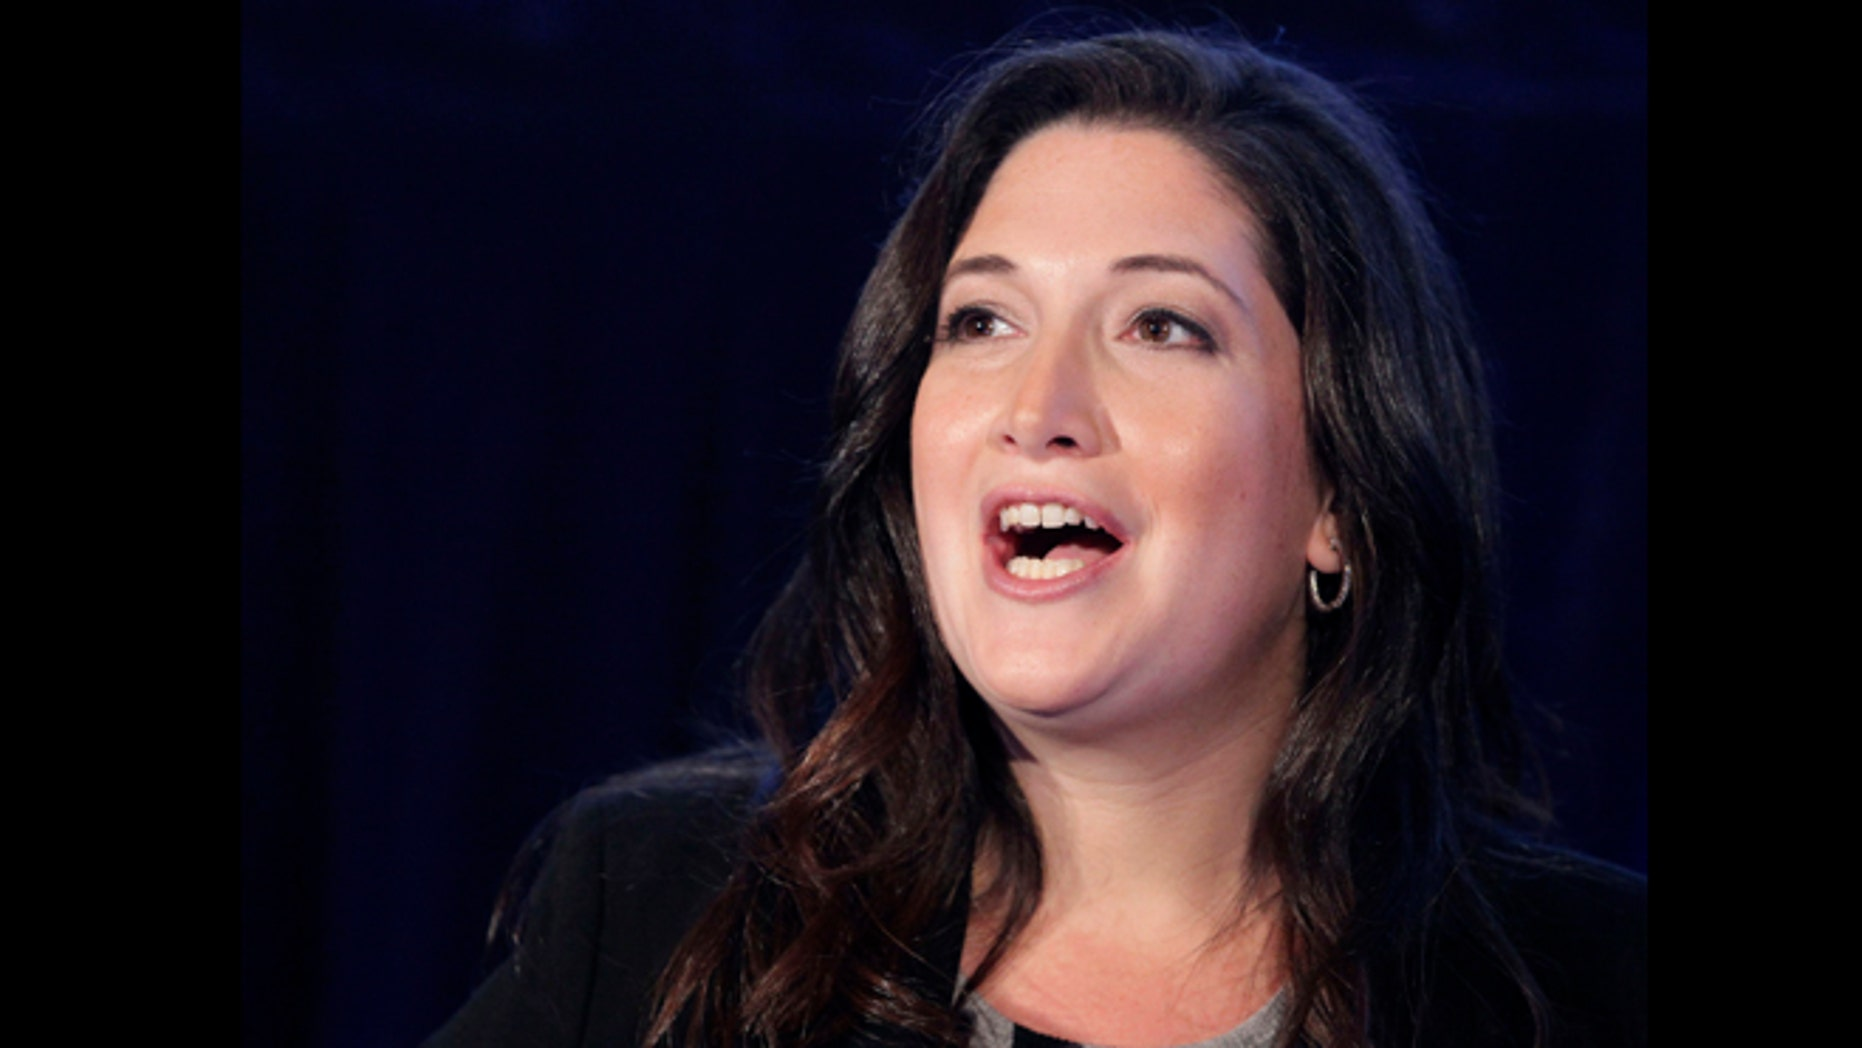 Oct. 4, 2011: Randi Zuckerberg, former marketing director of Facebook and founder of RtoZ Media, speaks at the Executive Marketing Summit in New York.